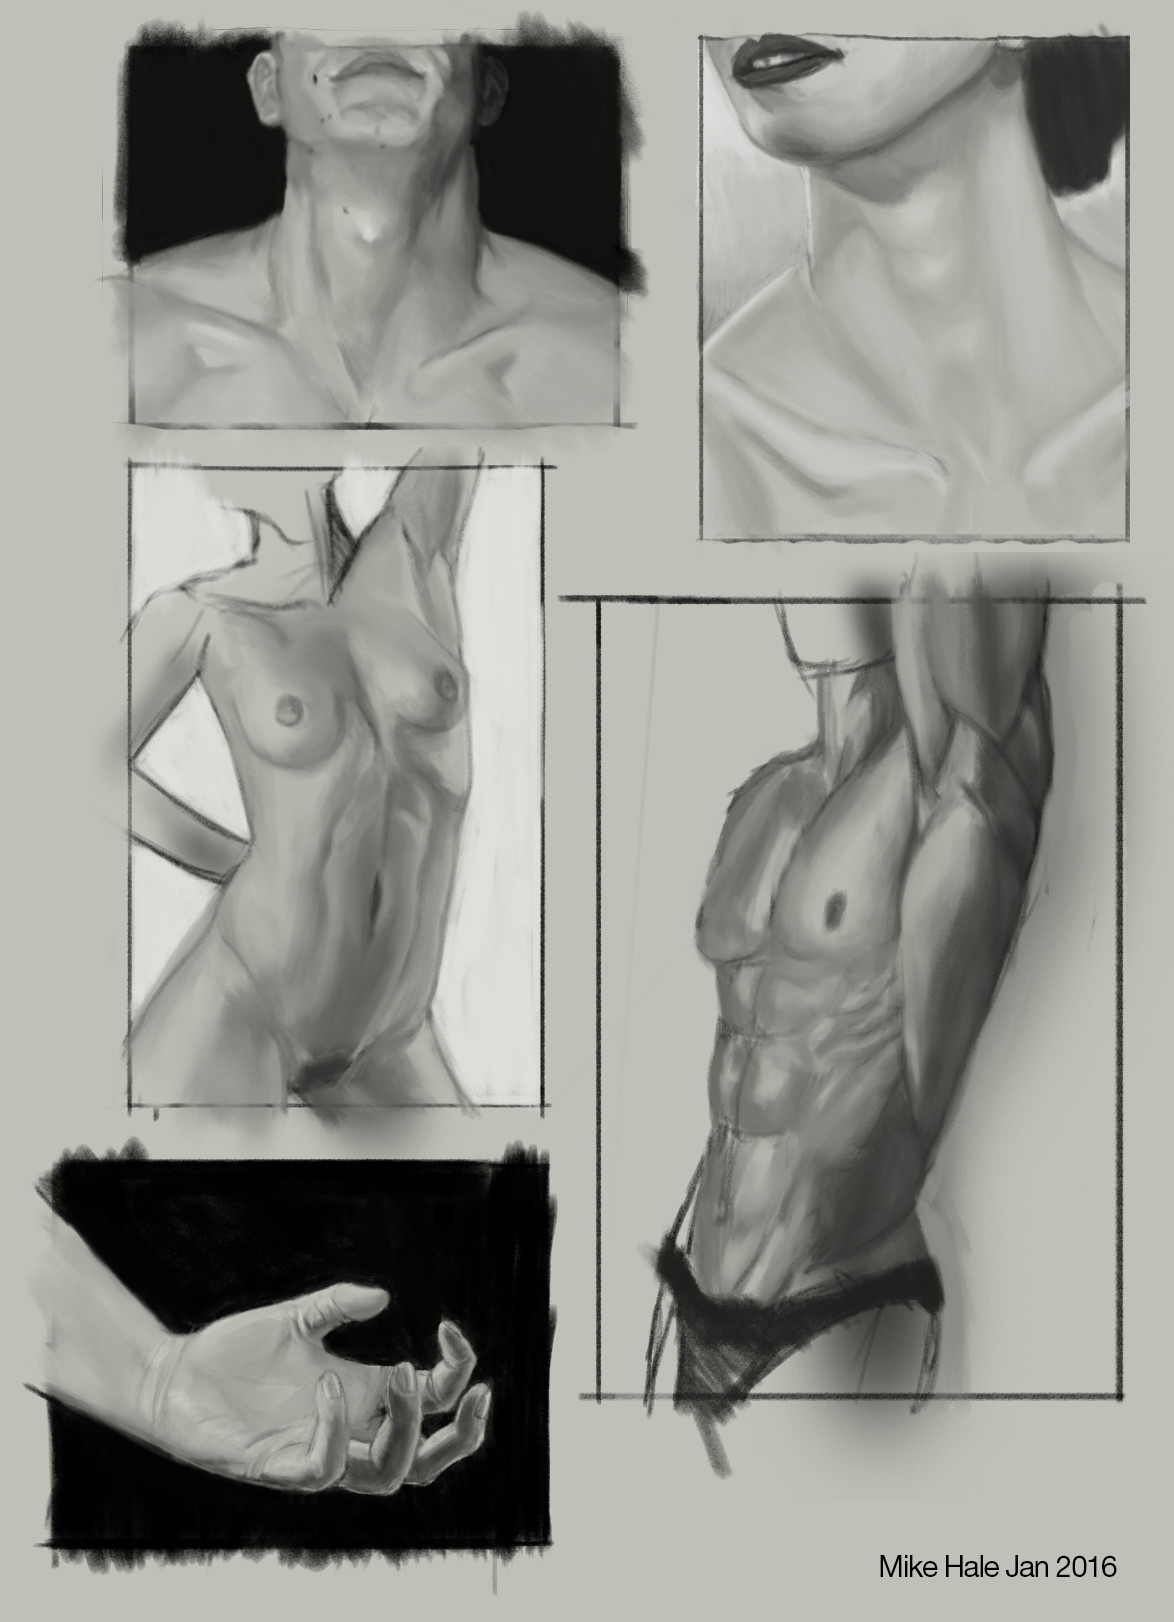 Mike hale studies da